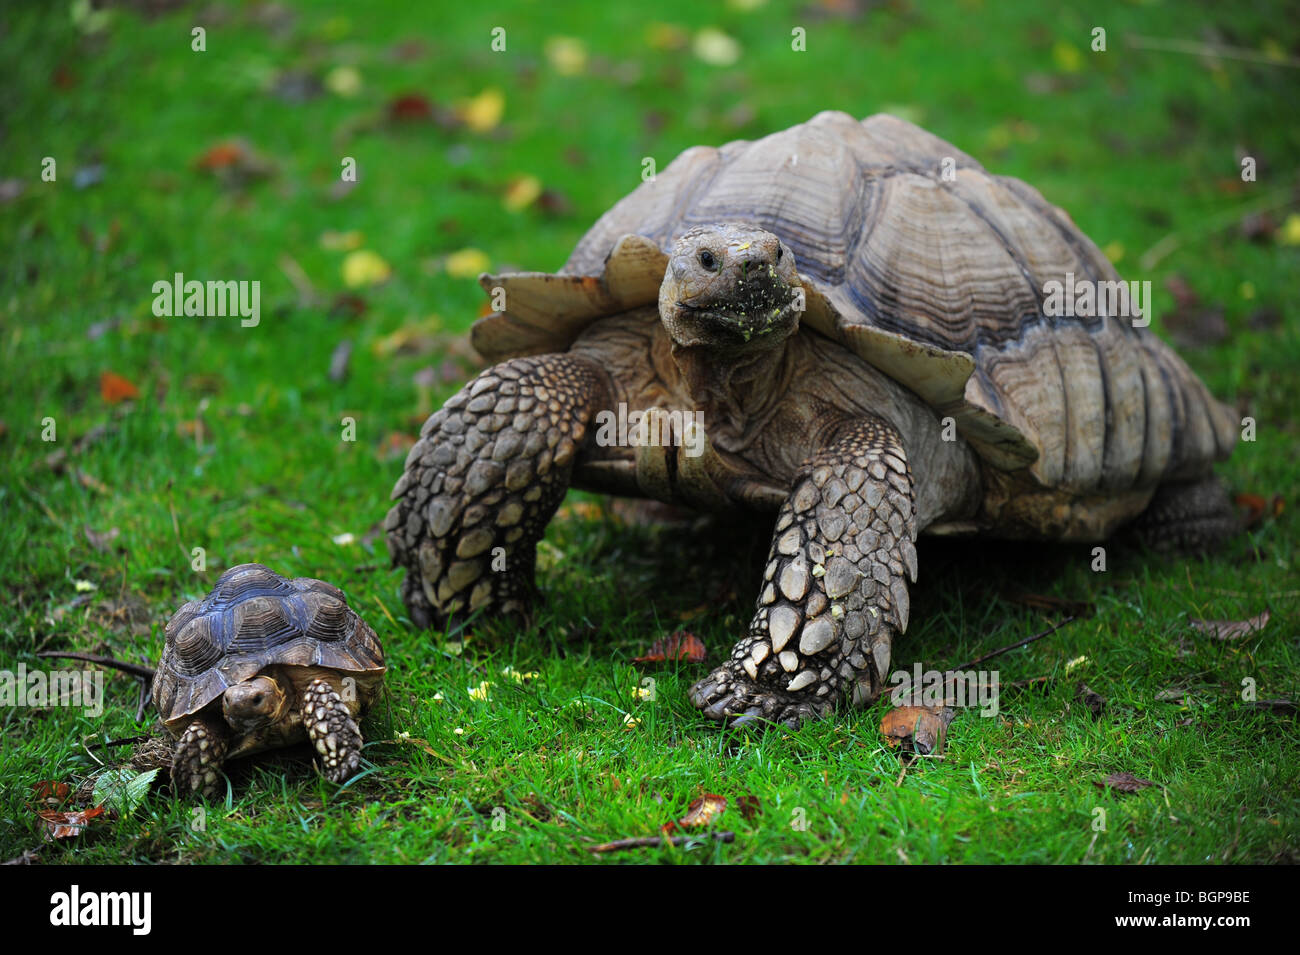 tortoise my pet My pet tortoise thinks he's a dog  vt october 28, 2017   my pet tortoise  thinks he's a dog 19m views 32k likes12k comments24k shares share.